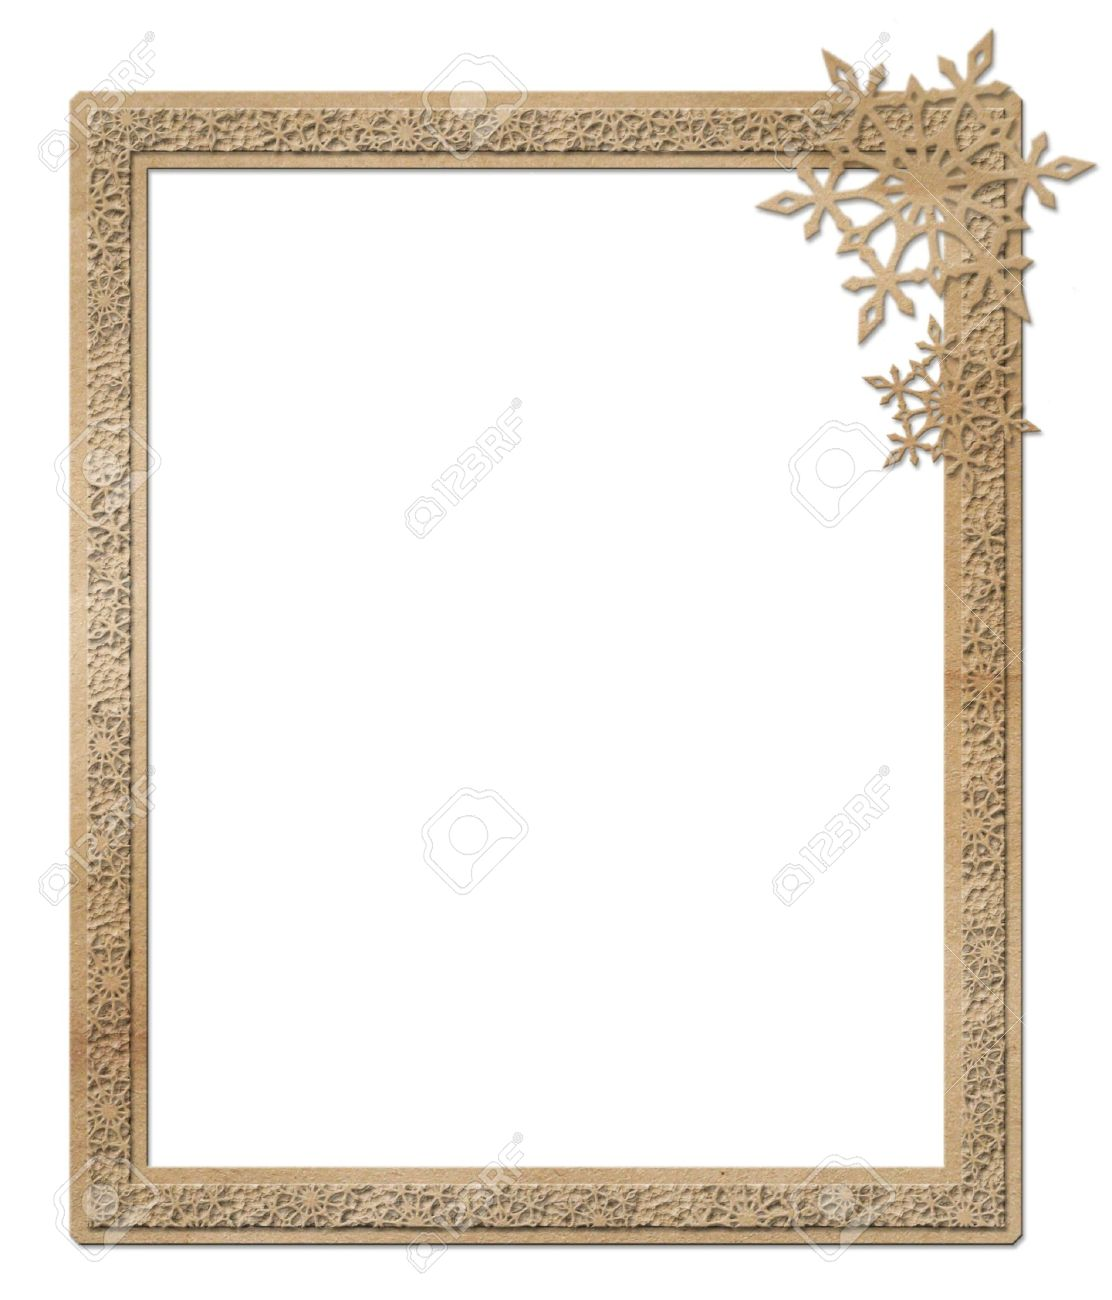 Cardboard Winter Frame Stock Photo, Picture And Royalty Free Image ...